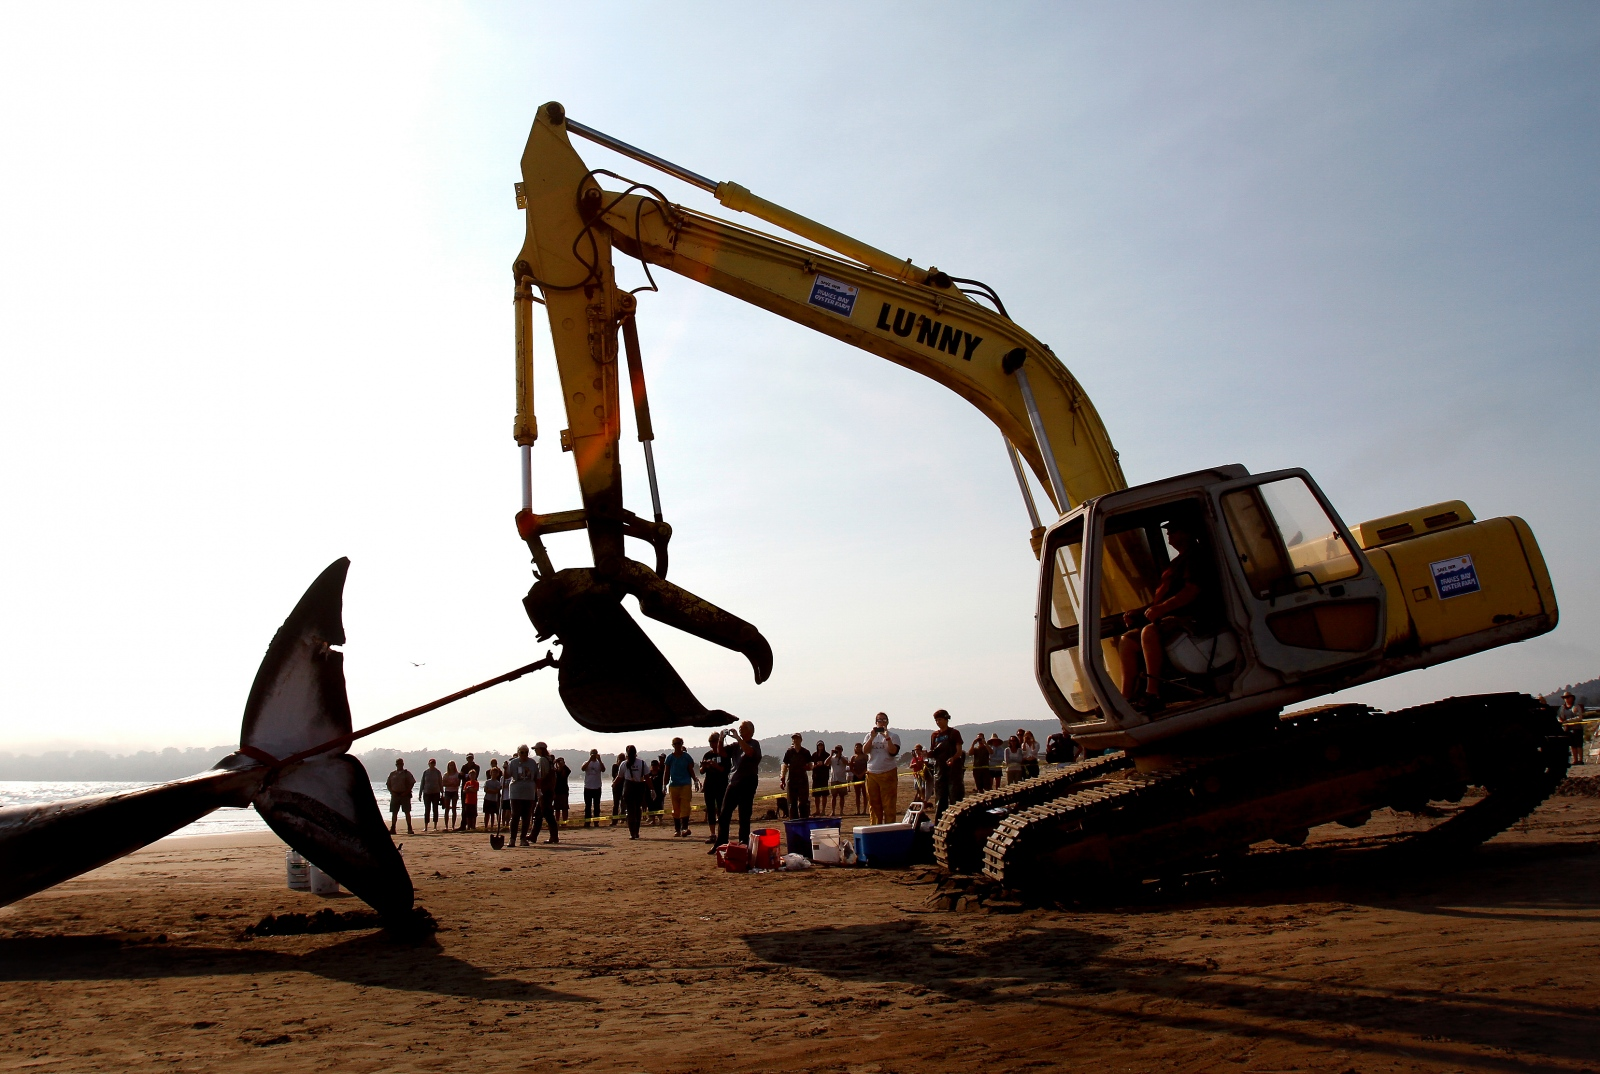 Art and Documentary Photography - Loading whale20_18T.jpg